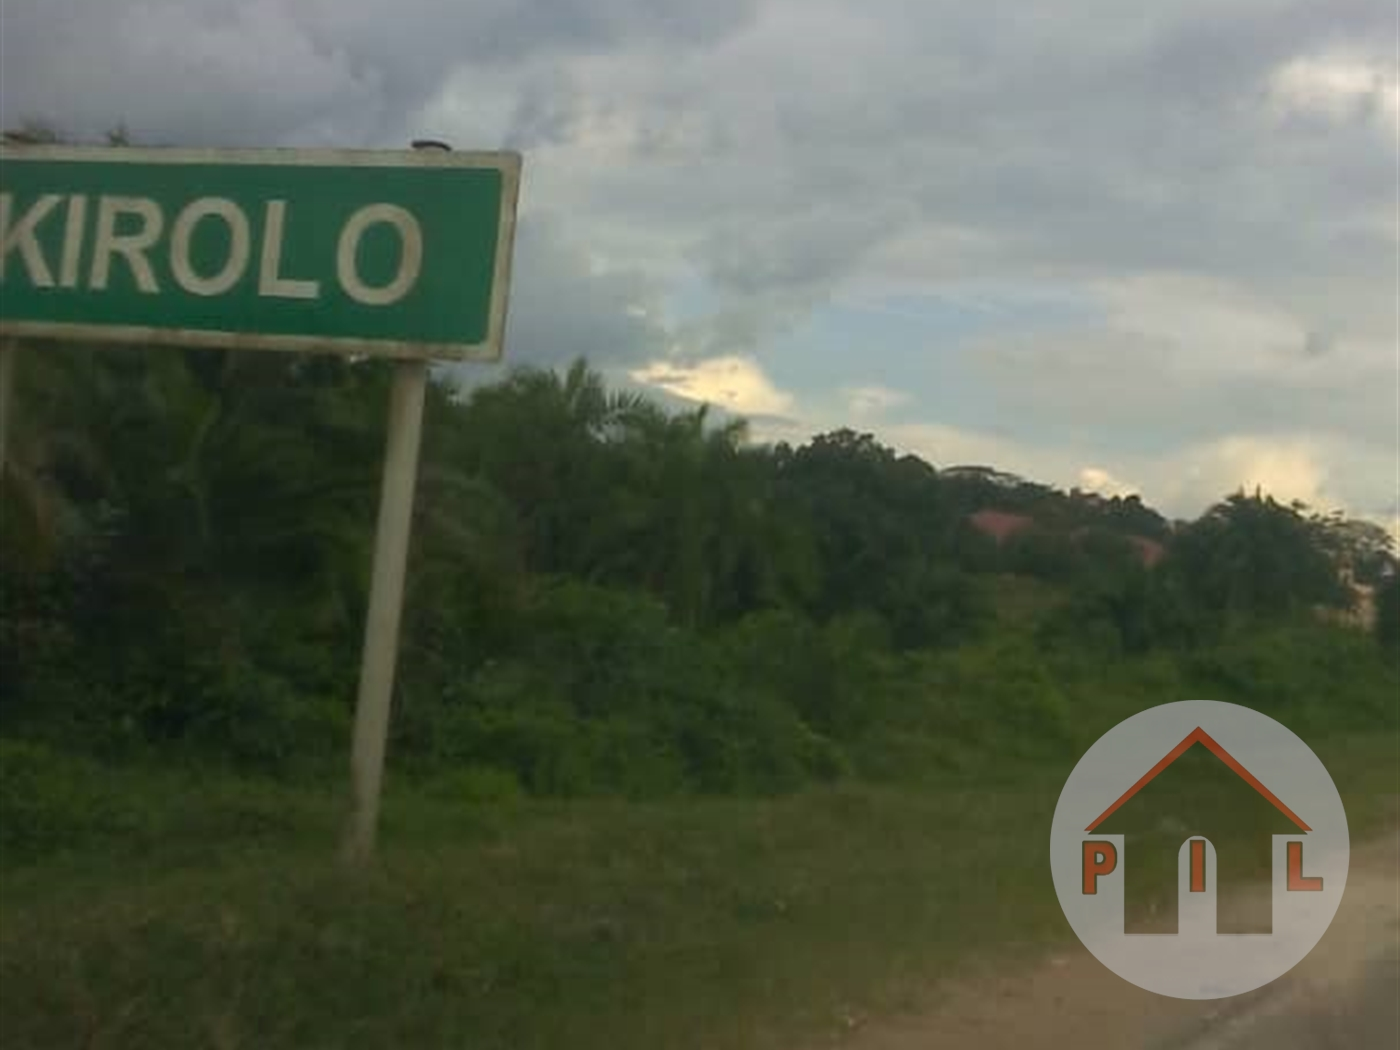 Agricultural Land for sale in Kirolo Wakiso